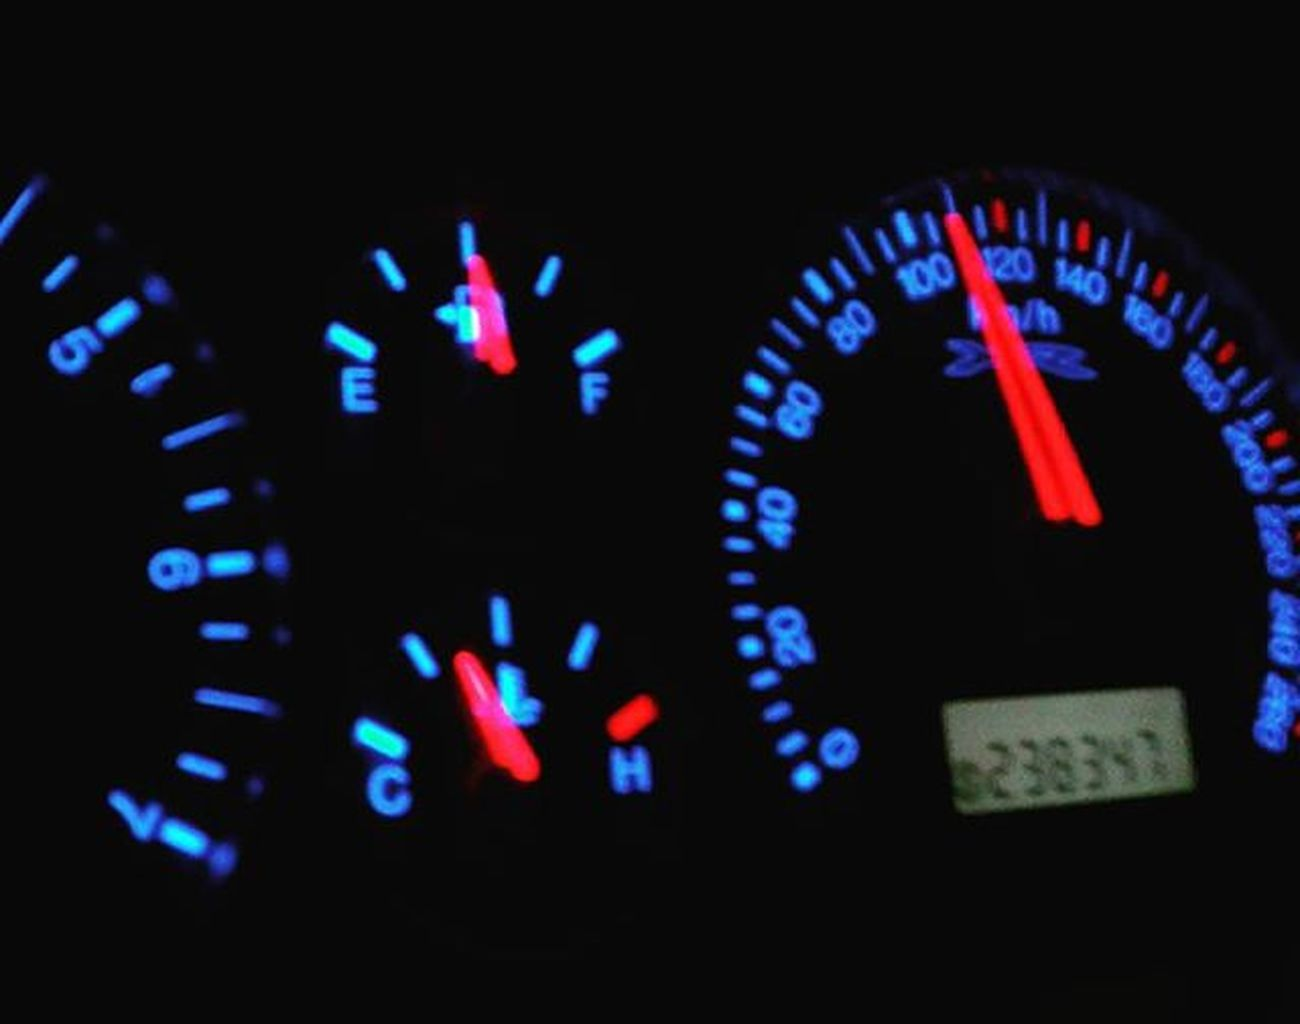 Headinghome Travelling Night Norsewood NZ Newzealand Aotearoa Car Vehicle Dashboard Ford Falcon Randomtrip Fyp_minimac_bbg 9vaga_colorblue9 Tvc_np_black Speedometer 9vaga_letters9